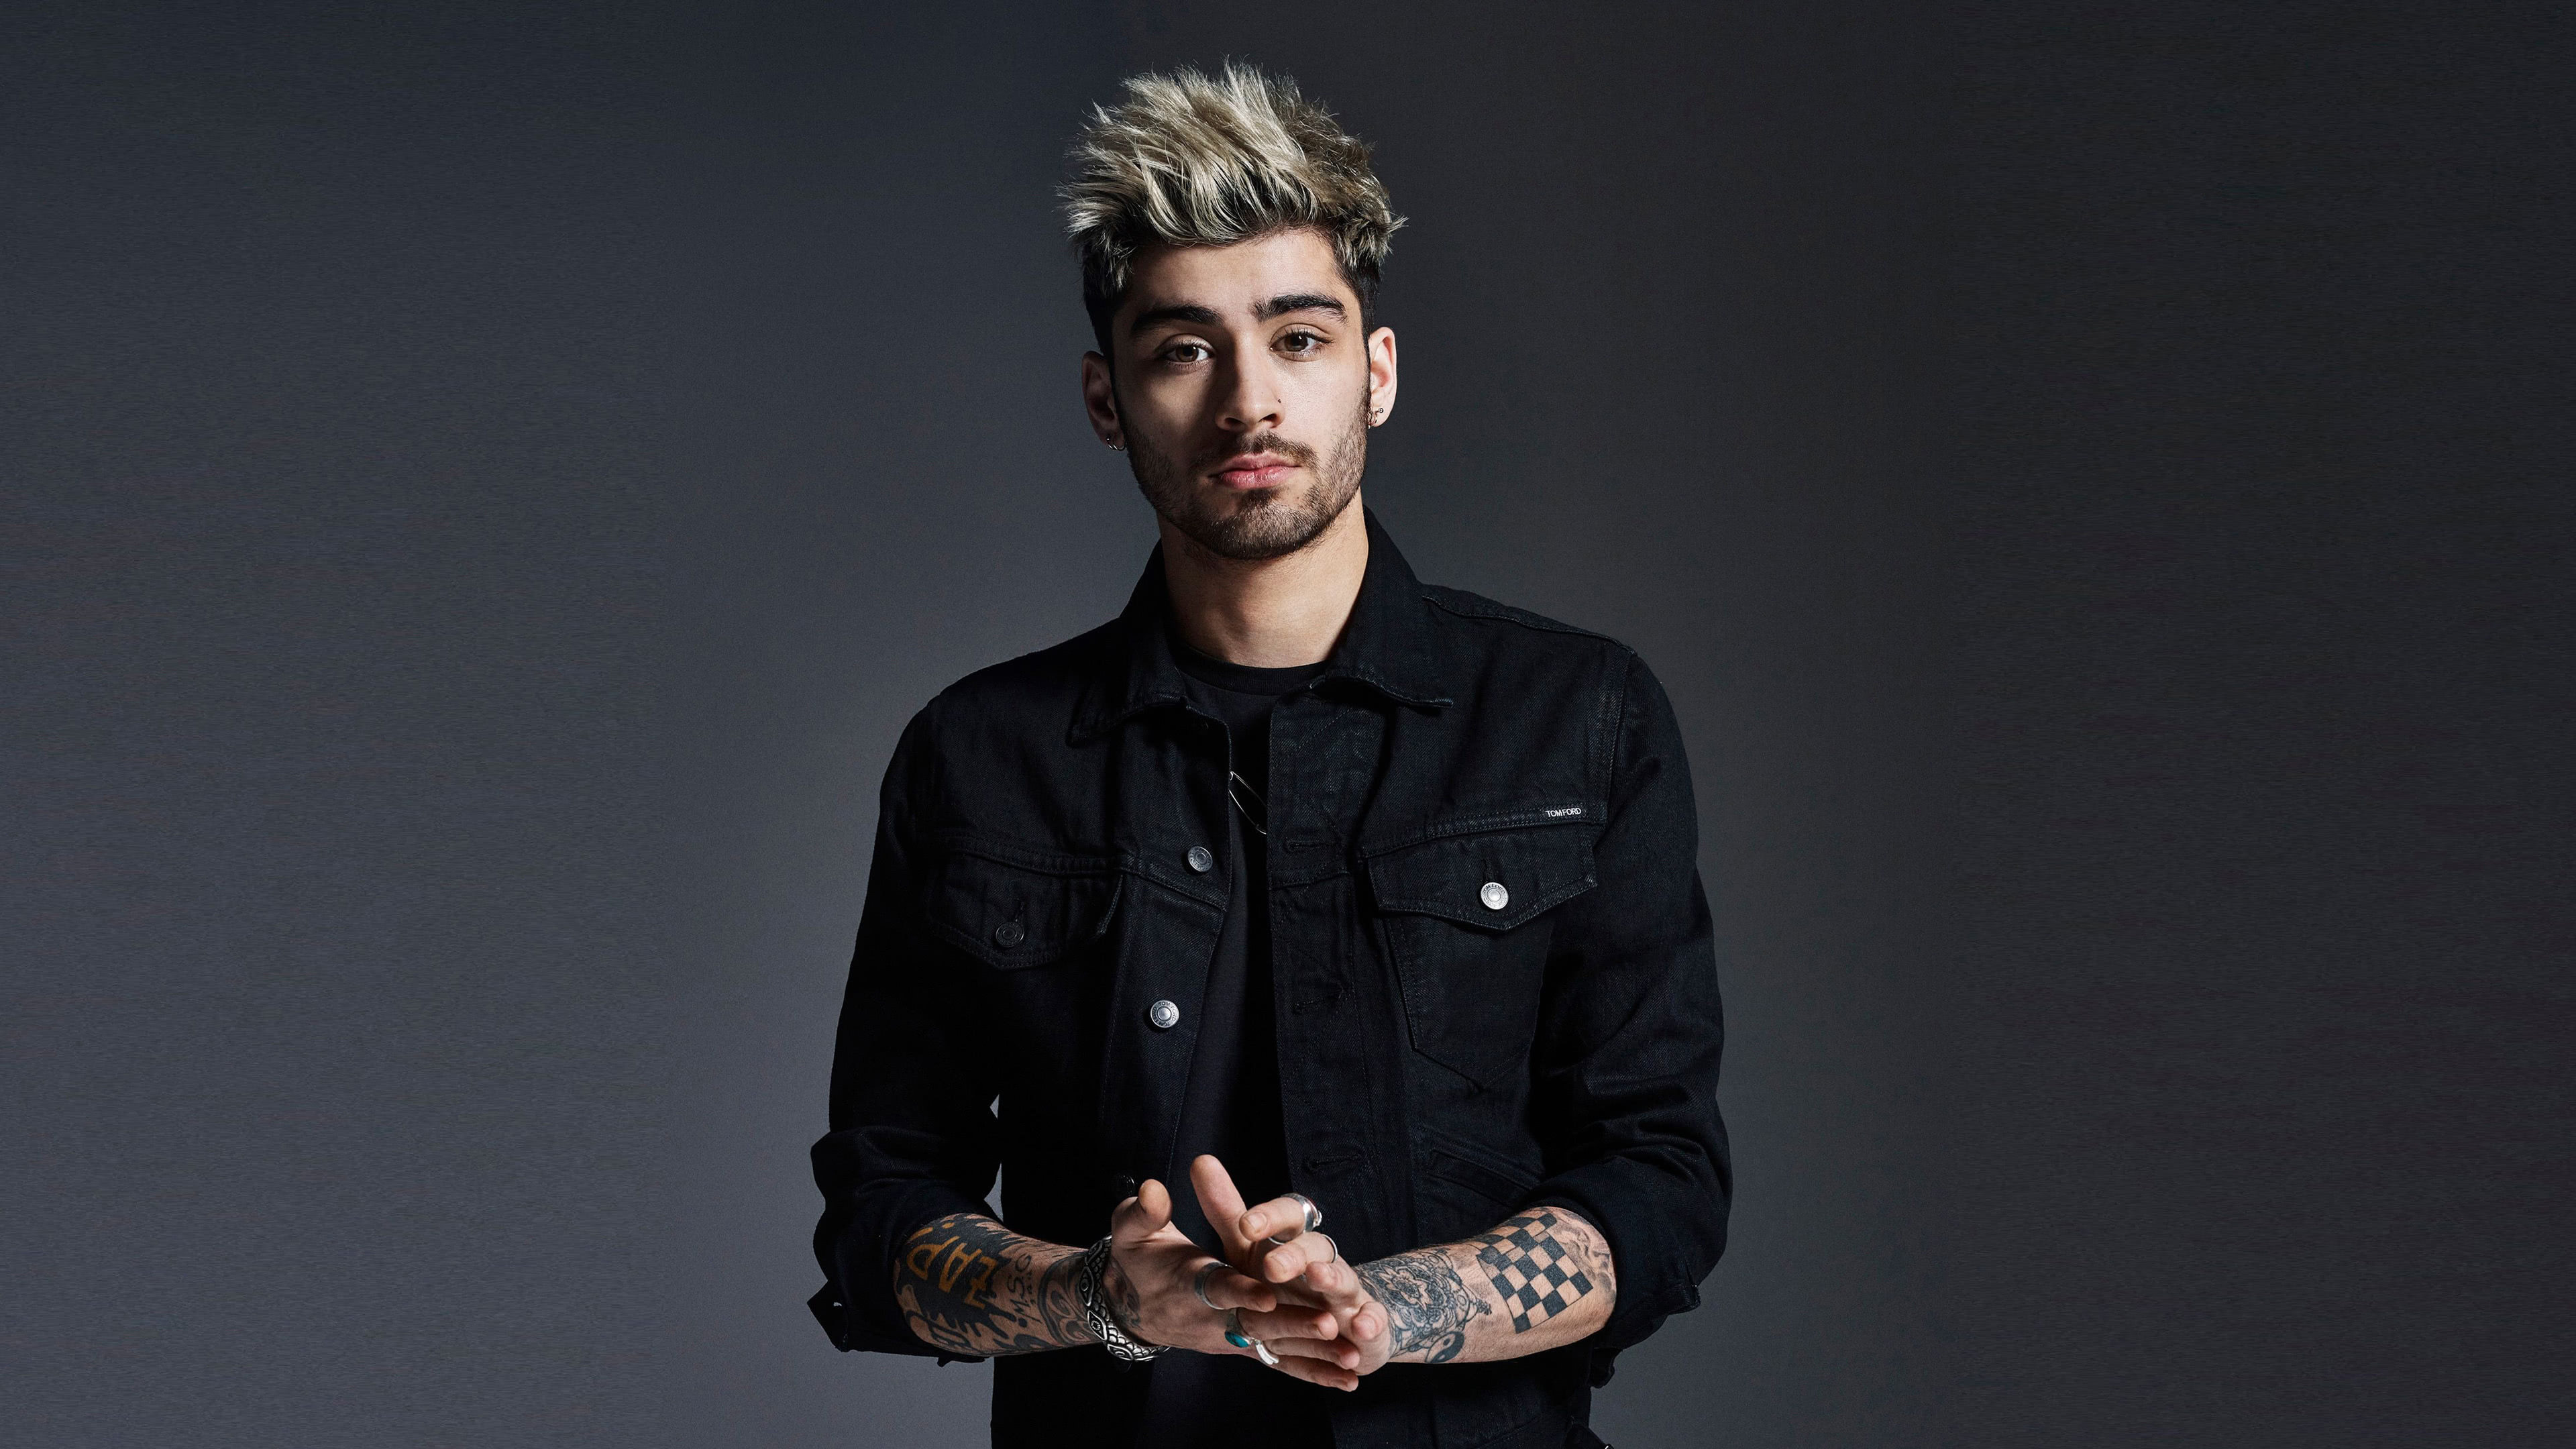 zayn malik photoshoot uhd 4k wallpaper